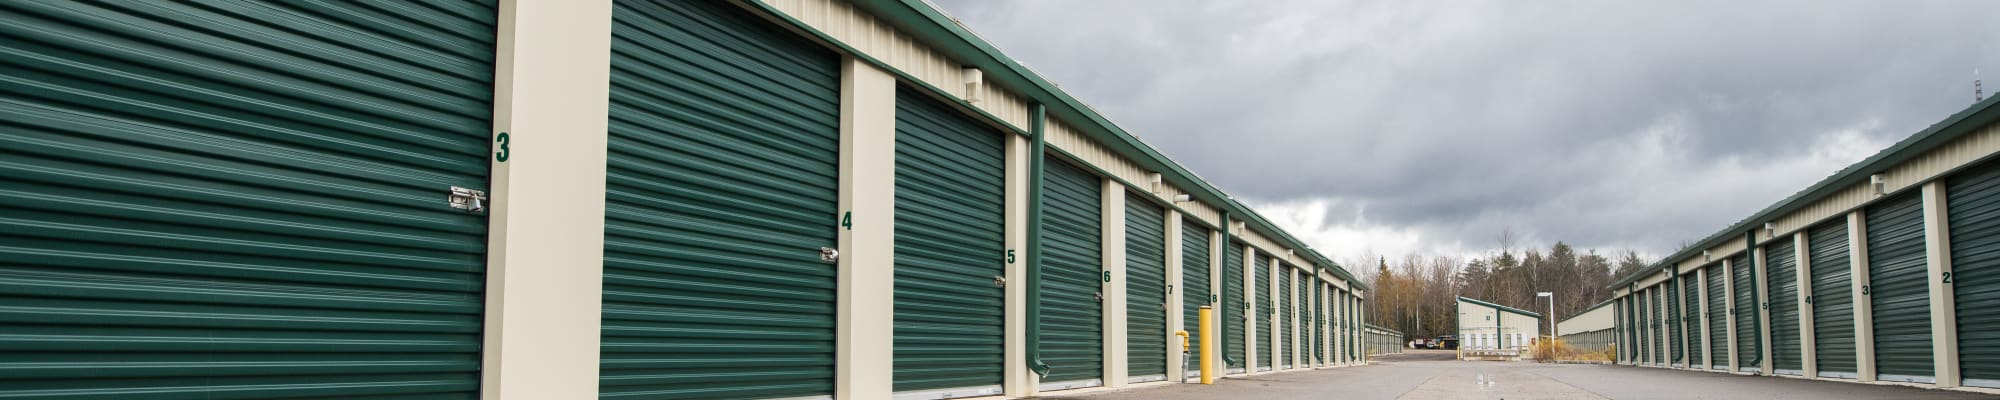 Blog page for Apple Self Storage - Aurora in Aurora, Ontario